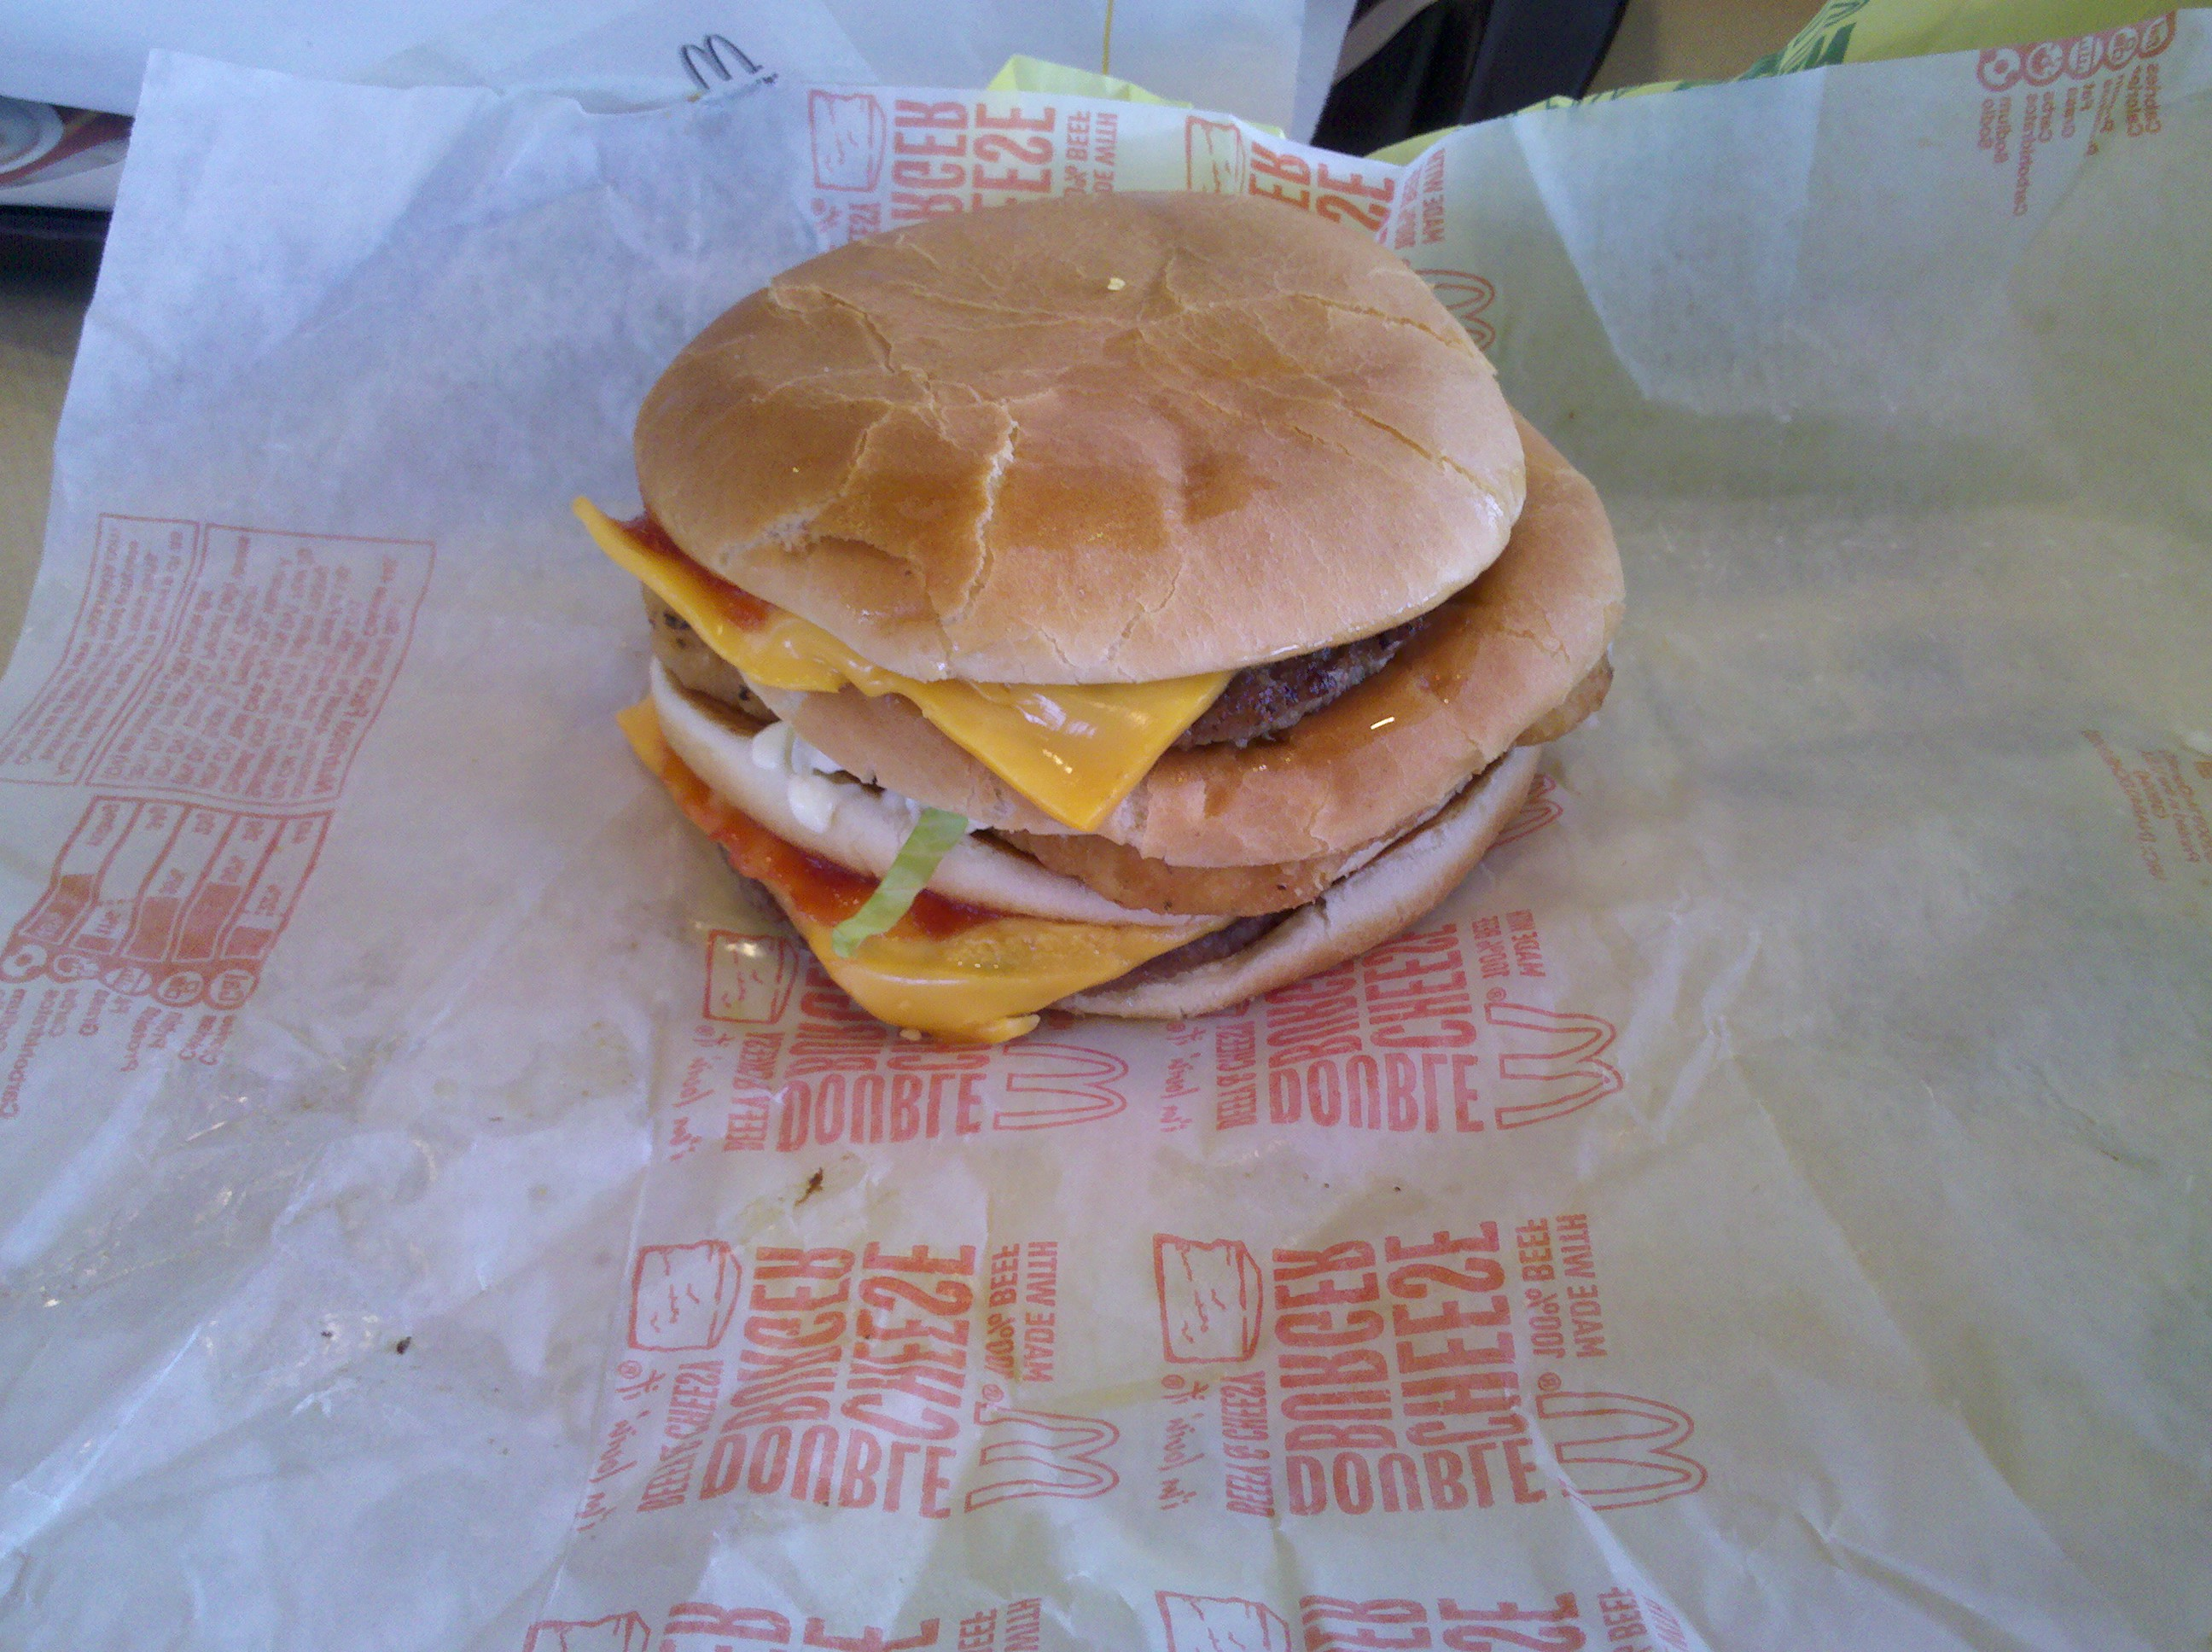 Valdosta :: McGangbang from McDonald's. double cheeseburger with a mcchicken in tbe middle